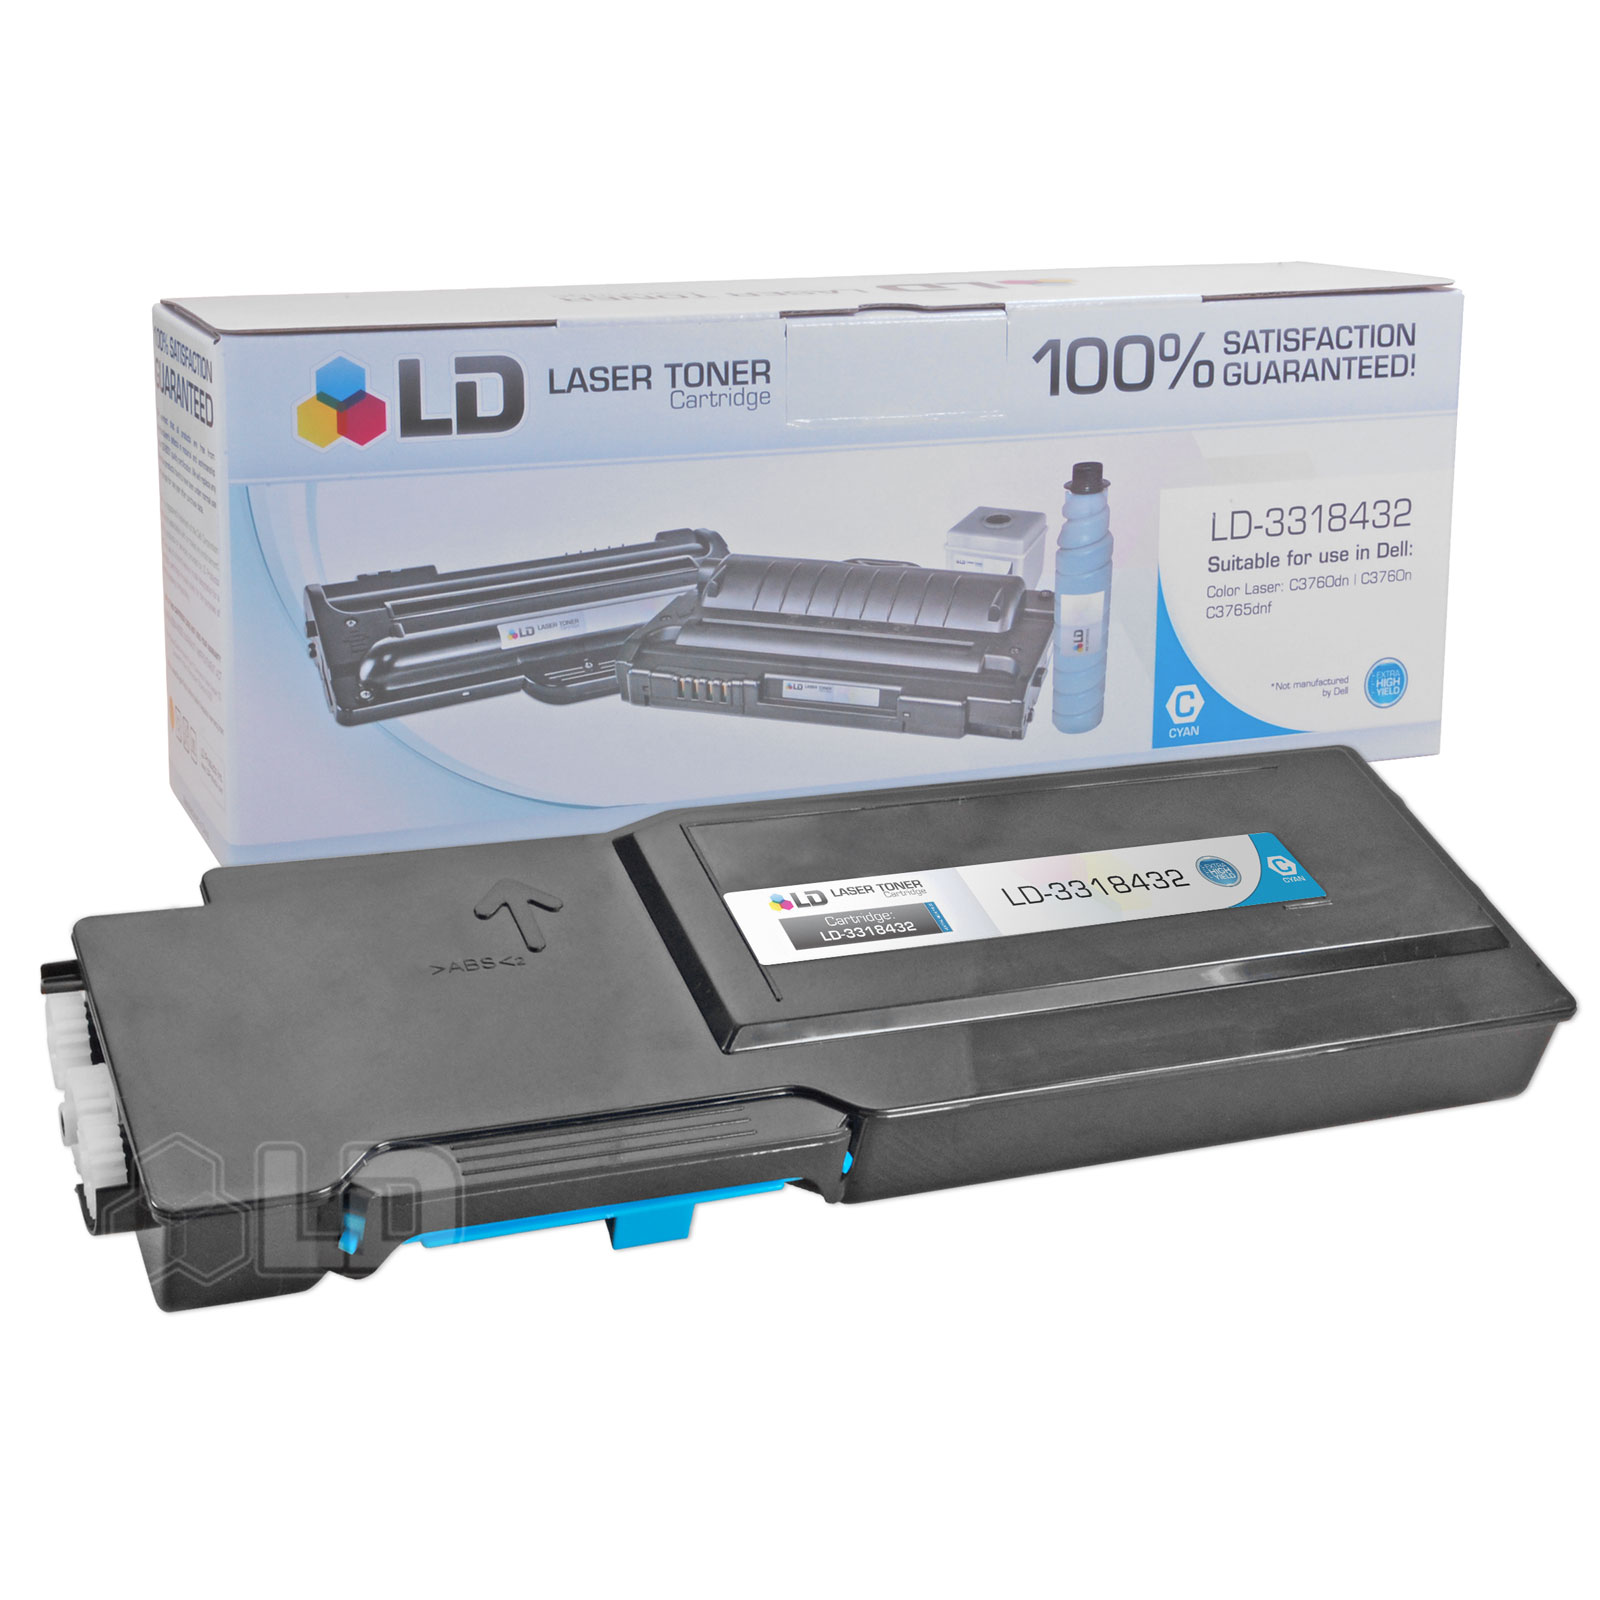 Compatible Toner to Replace Dell 331-8432 (1M4KP) Extra High Yield Cyan Toner Cartridge for Dell C3760 and C3765 Laser